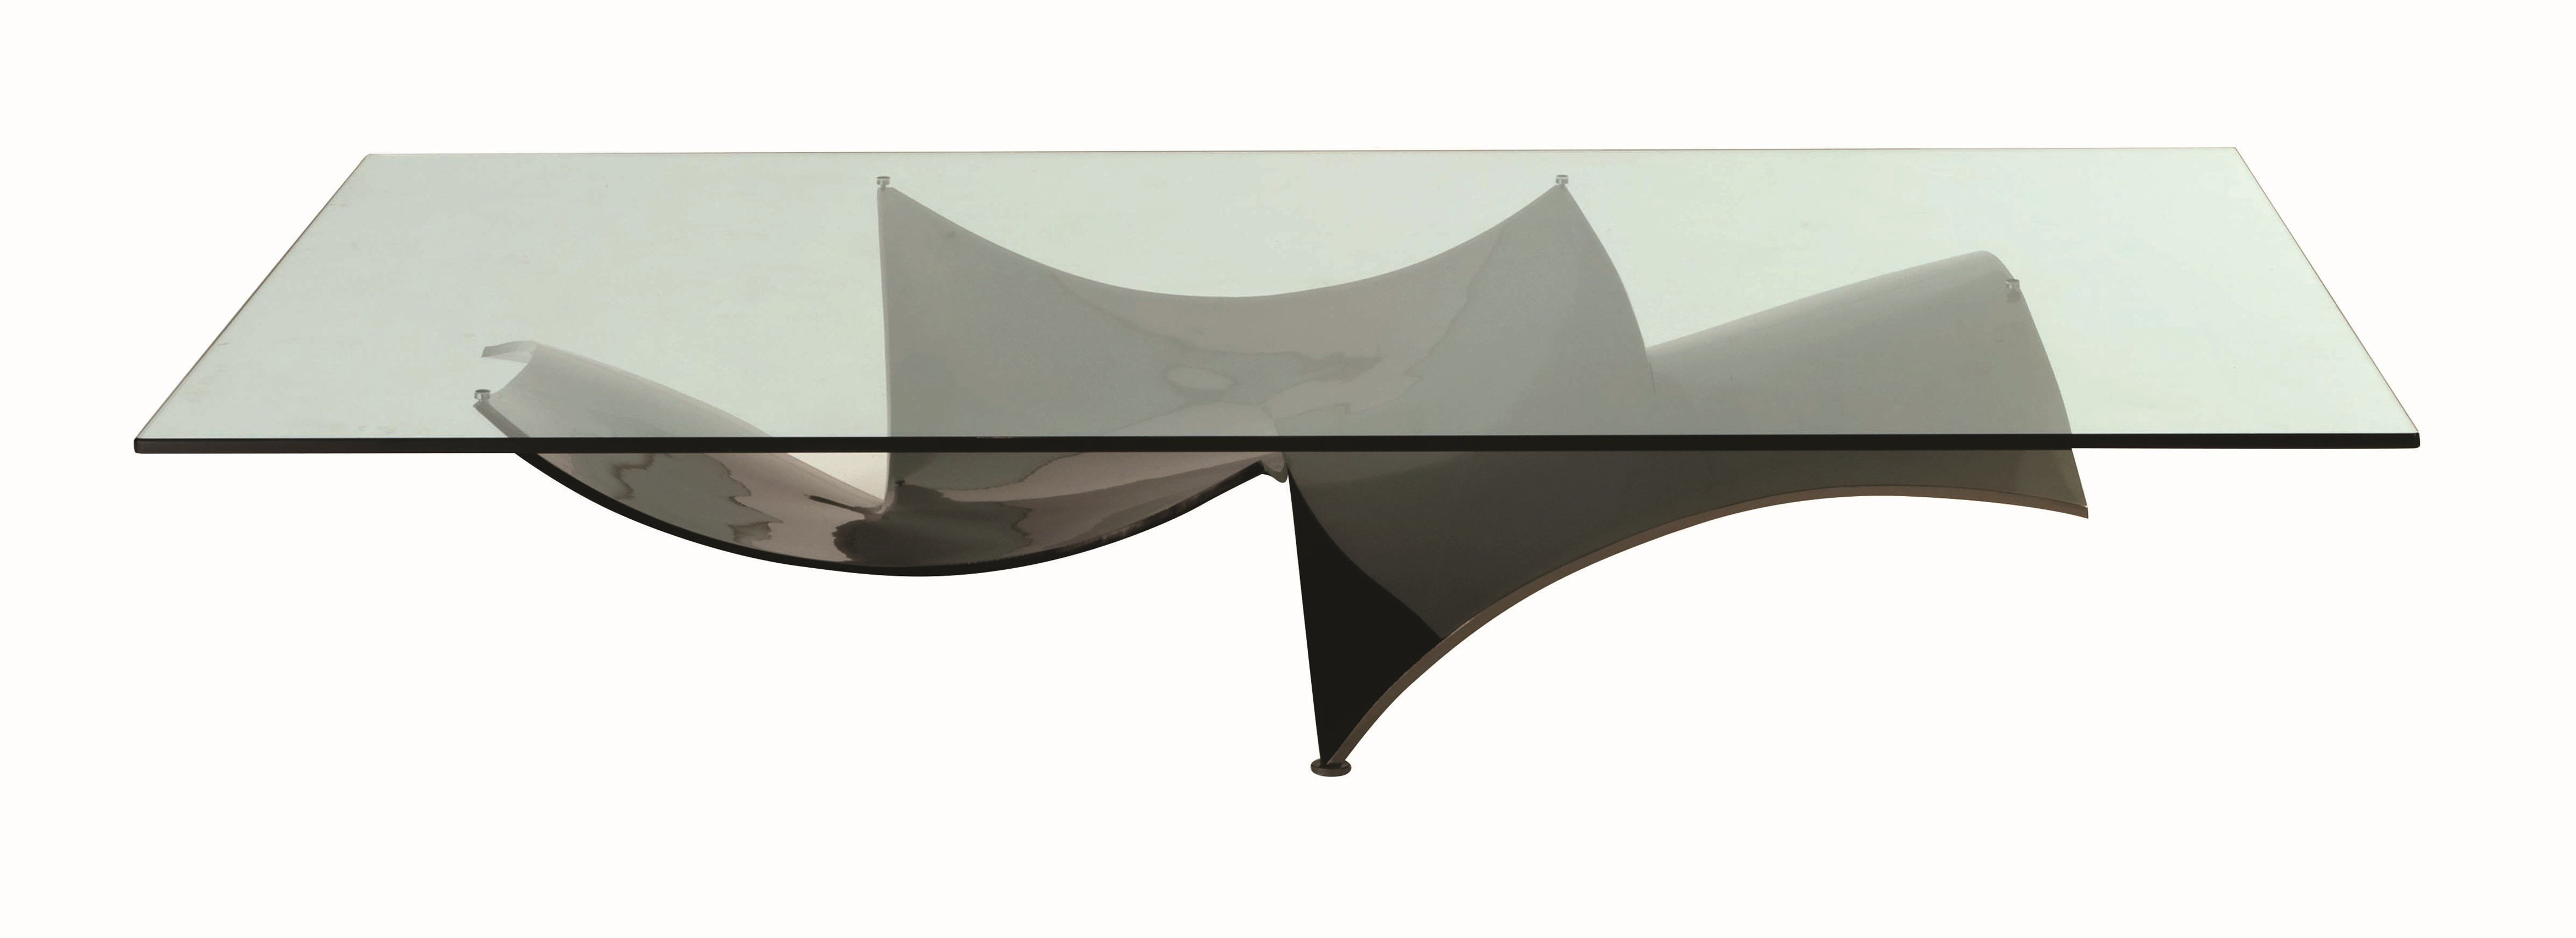 Low Rectangular Coffee Table Voiles Les Contemporains Collection By Roche Bobois Design